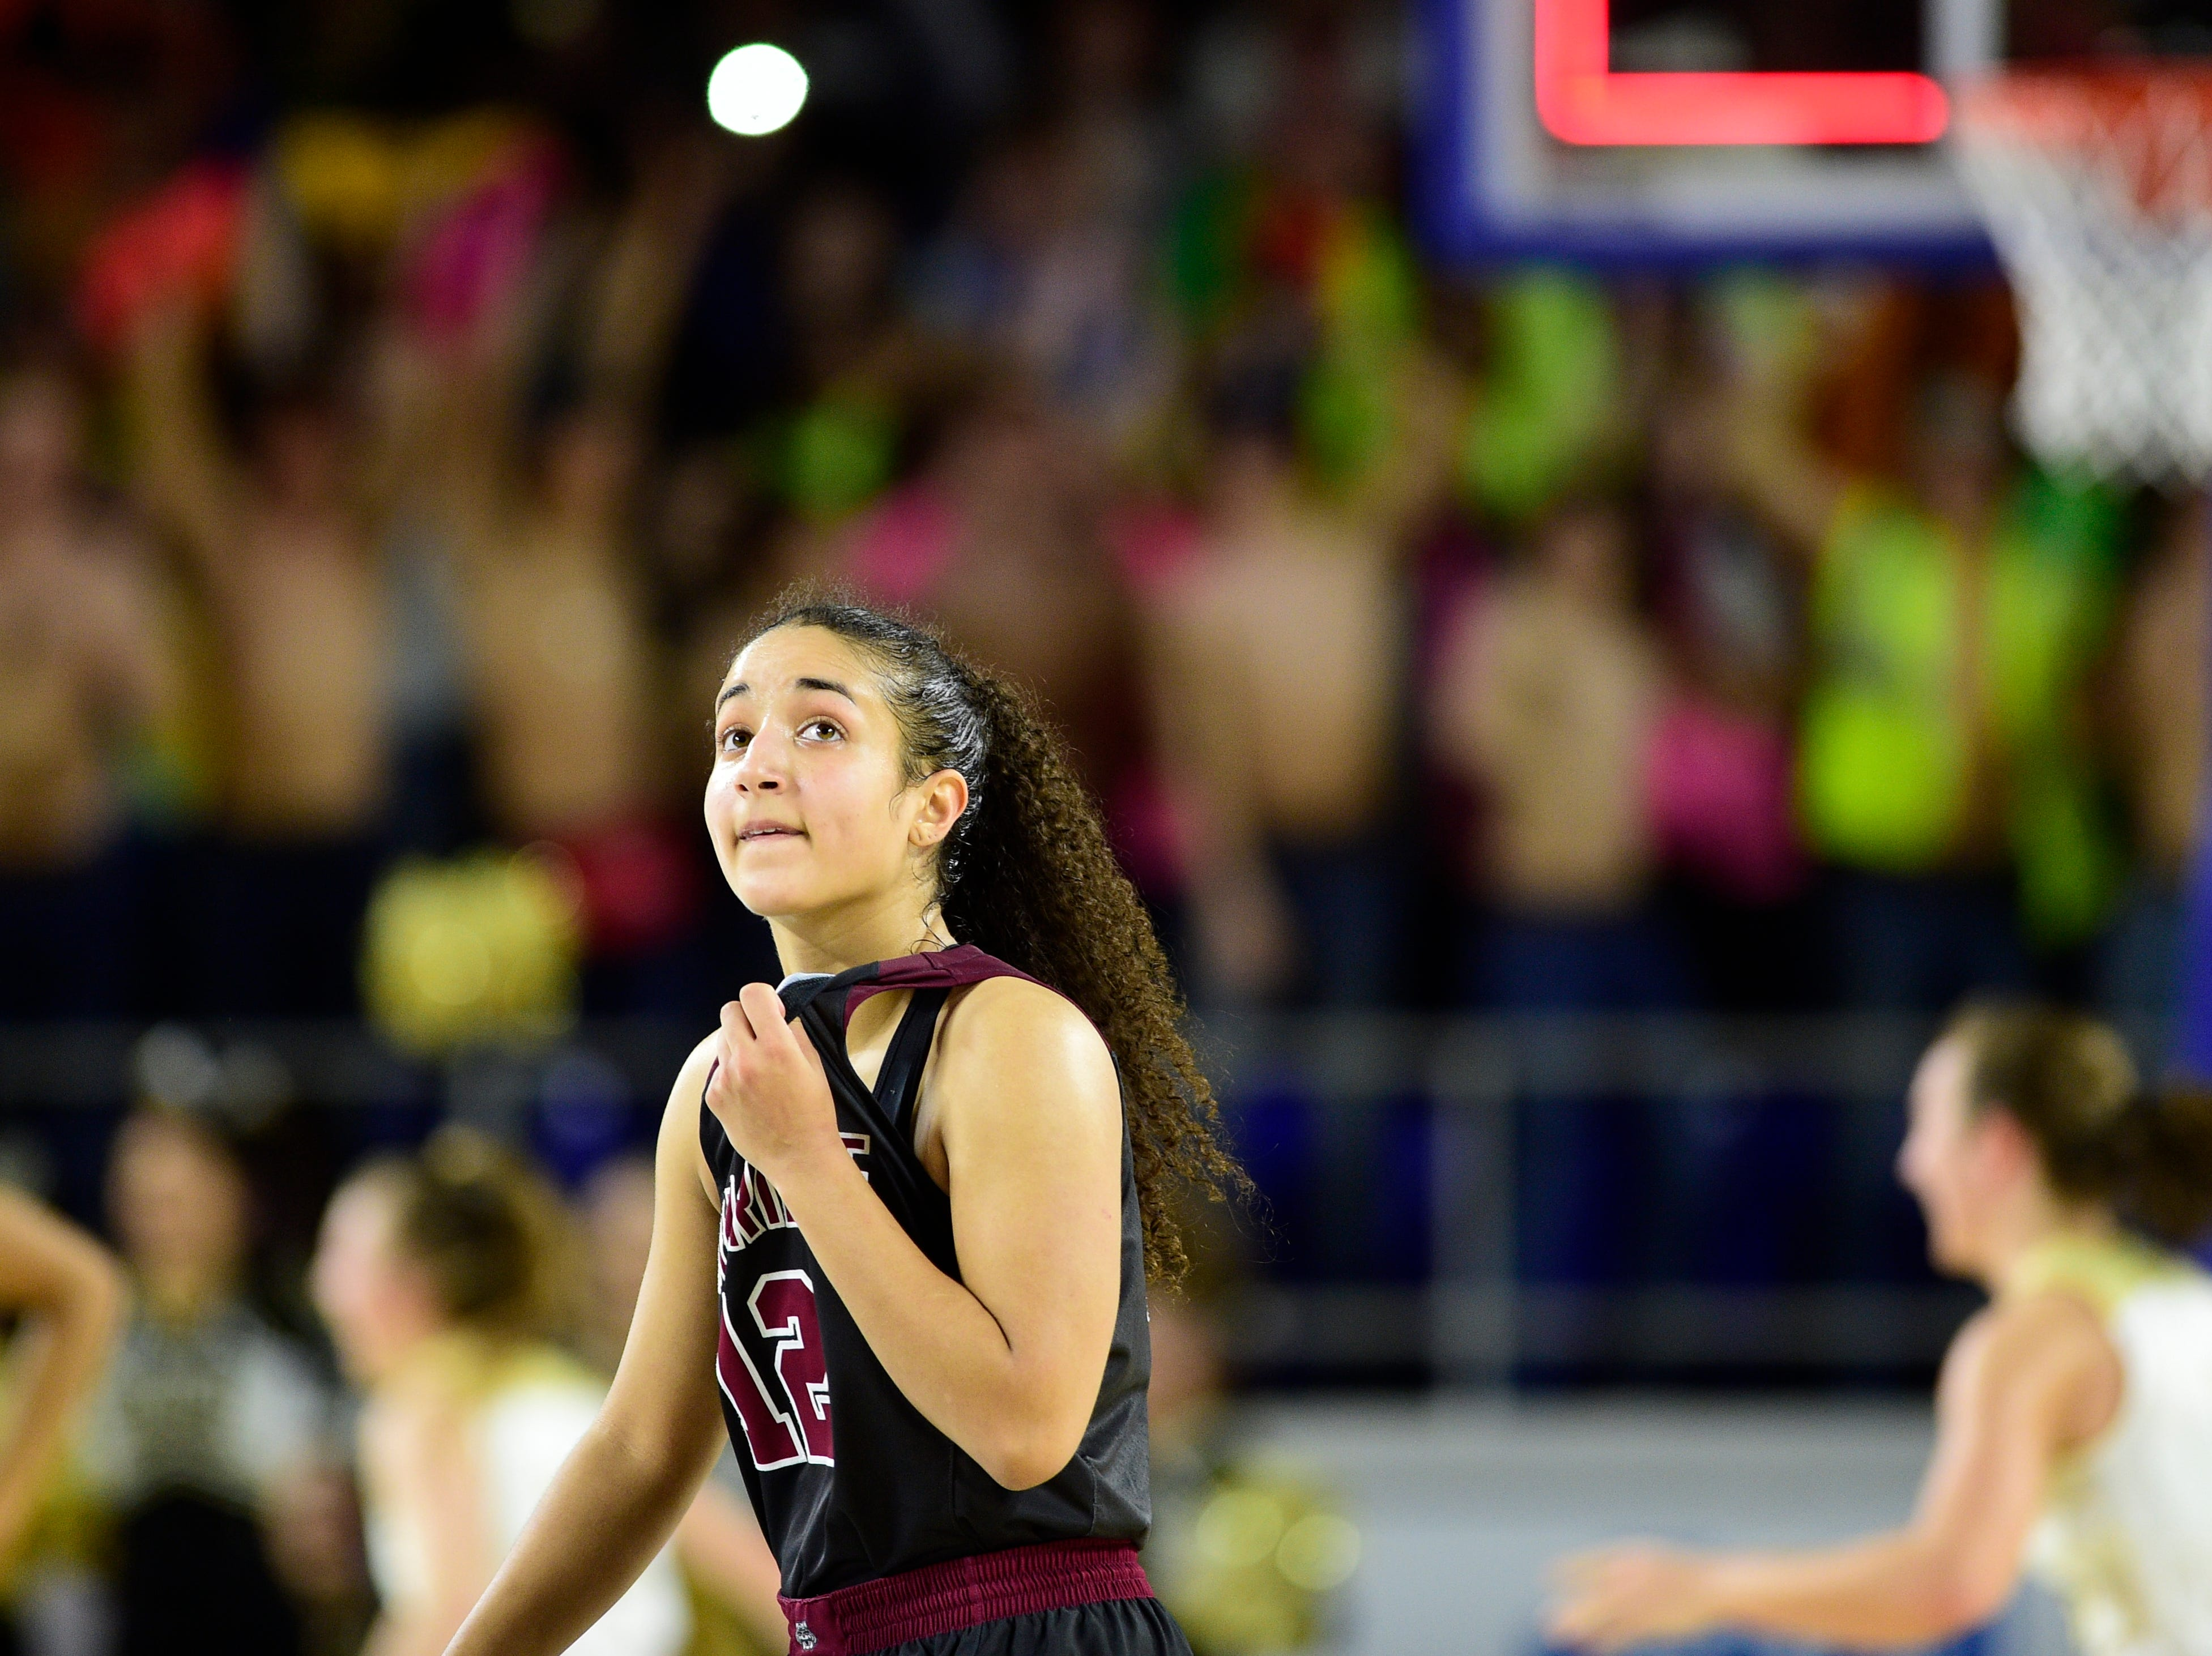 Oak Ridge's Brianna Dunbar (12) reacts after losing to Bradley Central 56-50 in overtime at the TSSAA girls state tournament at the Murphy Center in Murfreesboro, Tennessee on Friday, March 8, 2019.